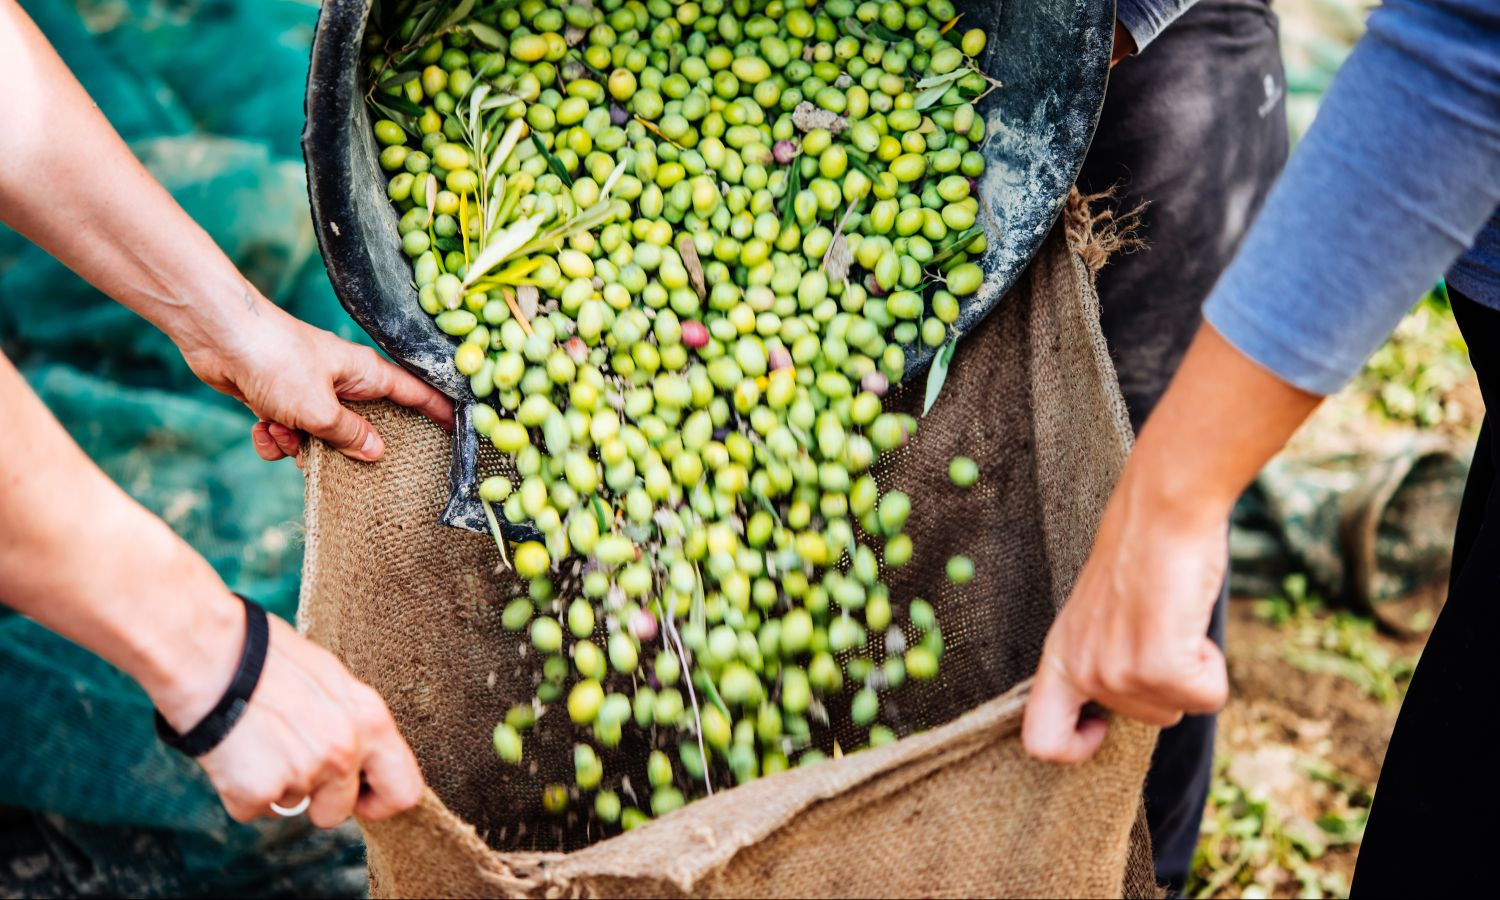 Green olives represent Bertolli high-quality olive oil